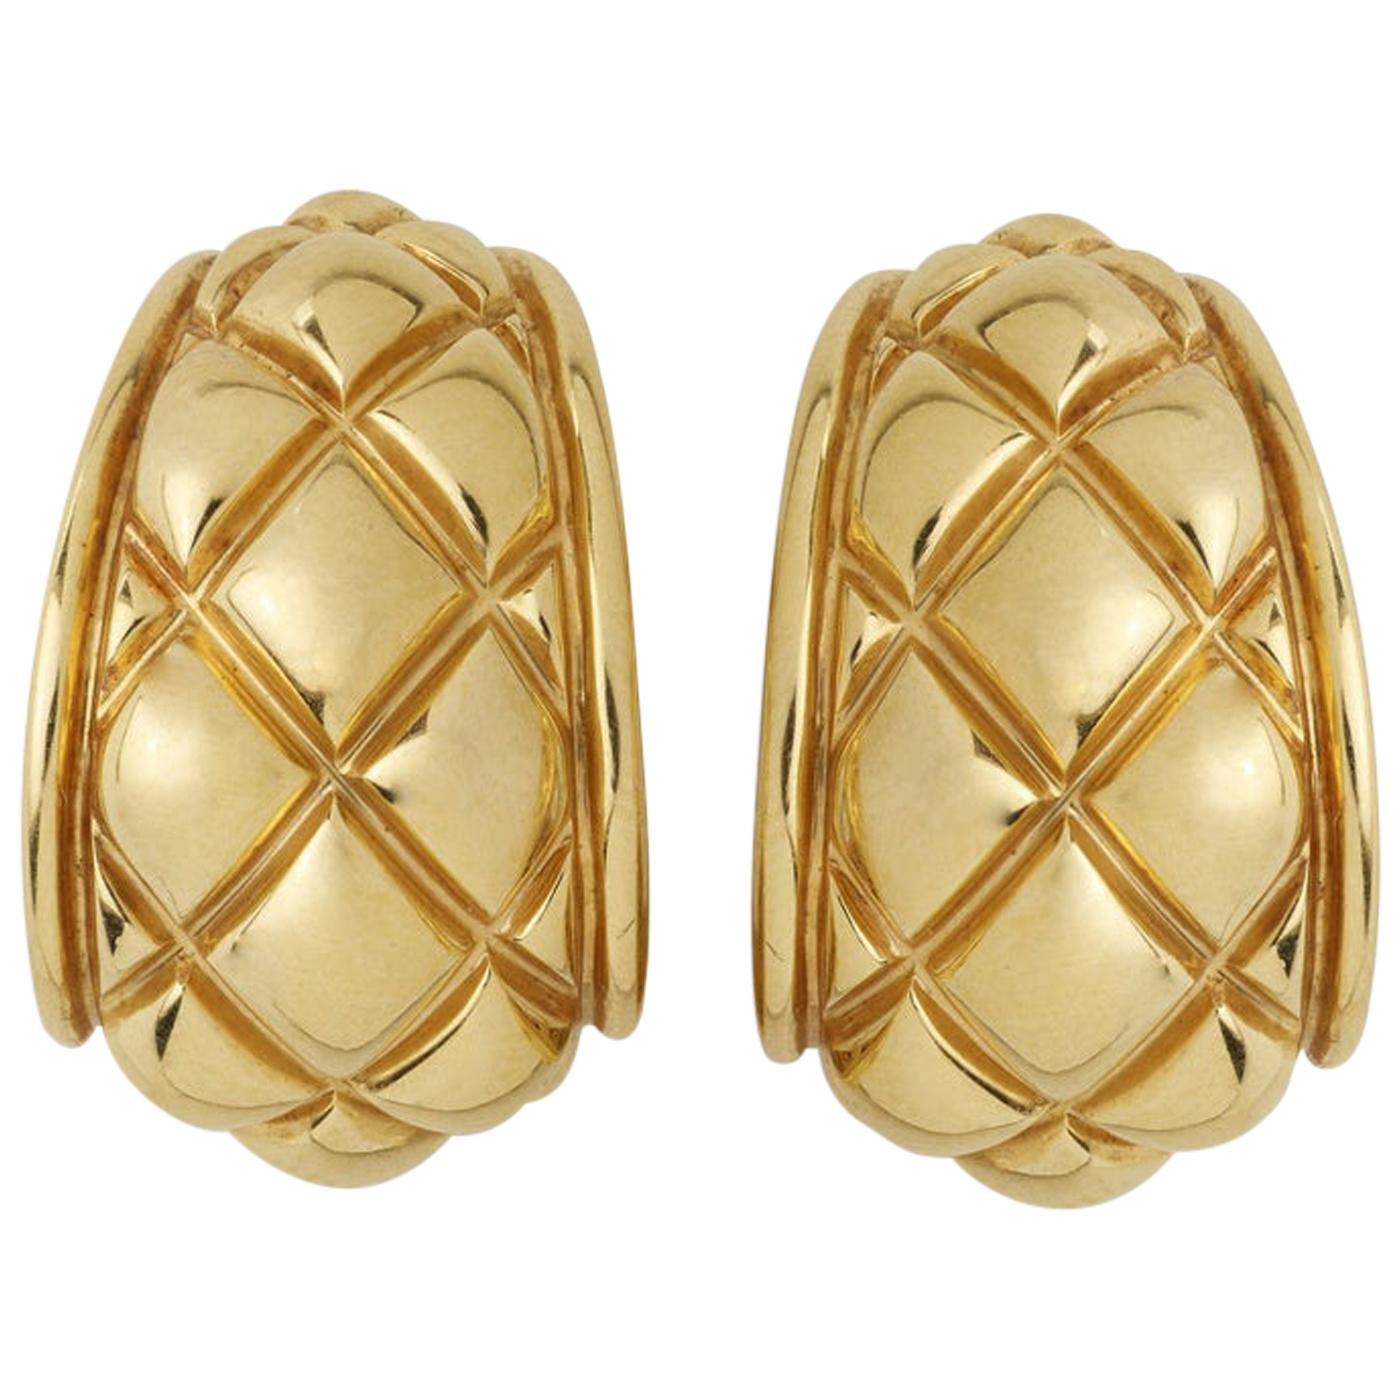 Chaumet Quilted Half-Hoop Earrings Omega Backs and Post 18K Yellow Gold